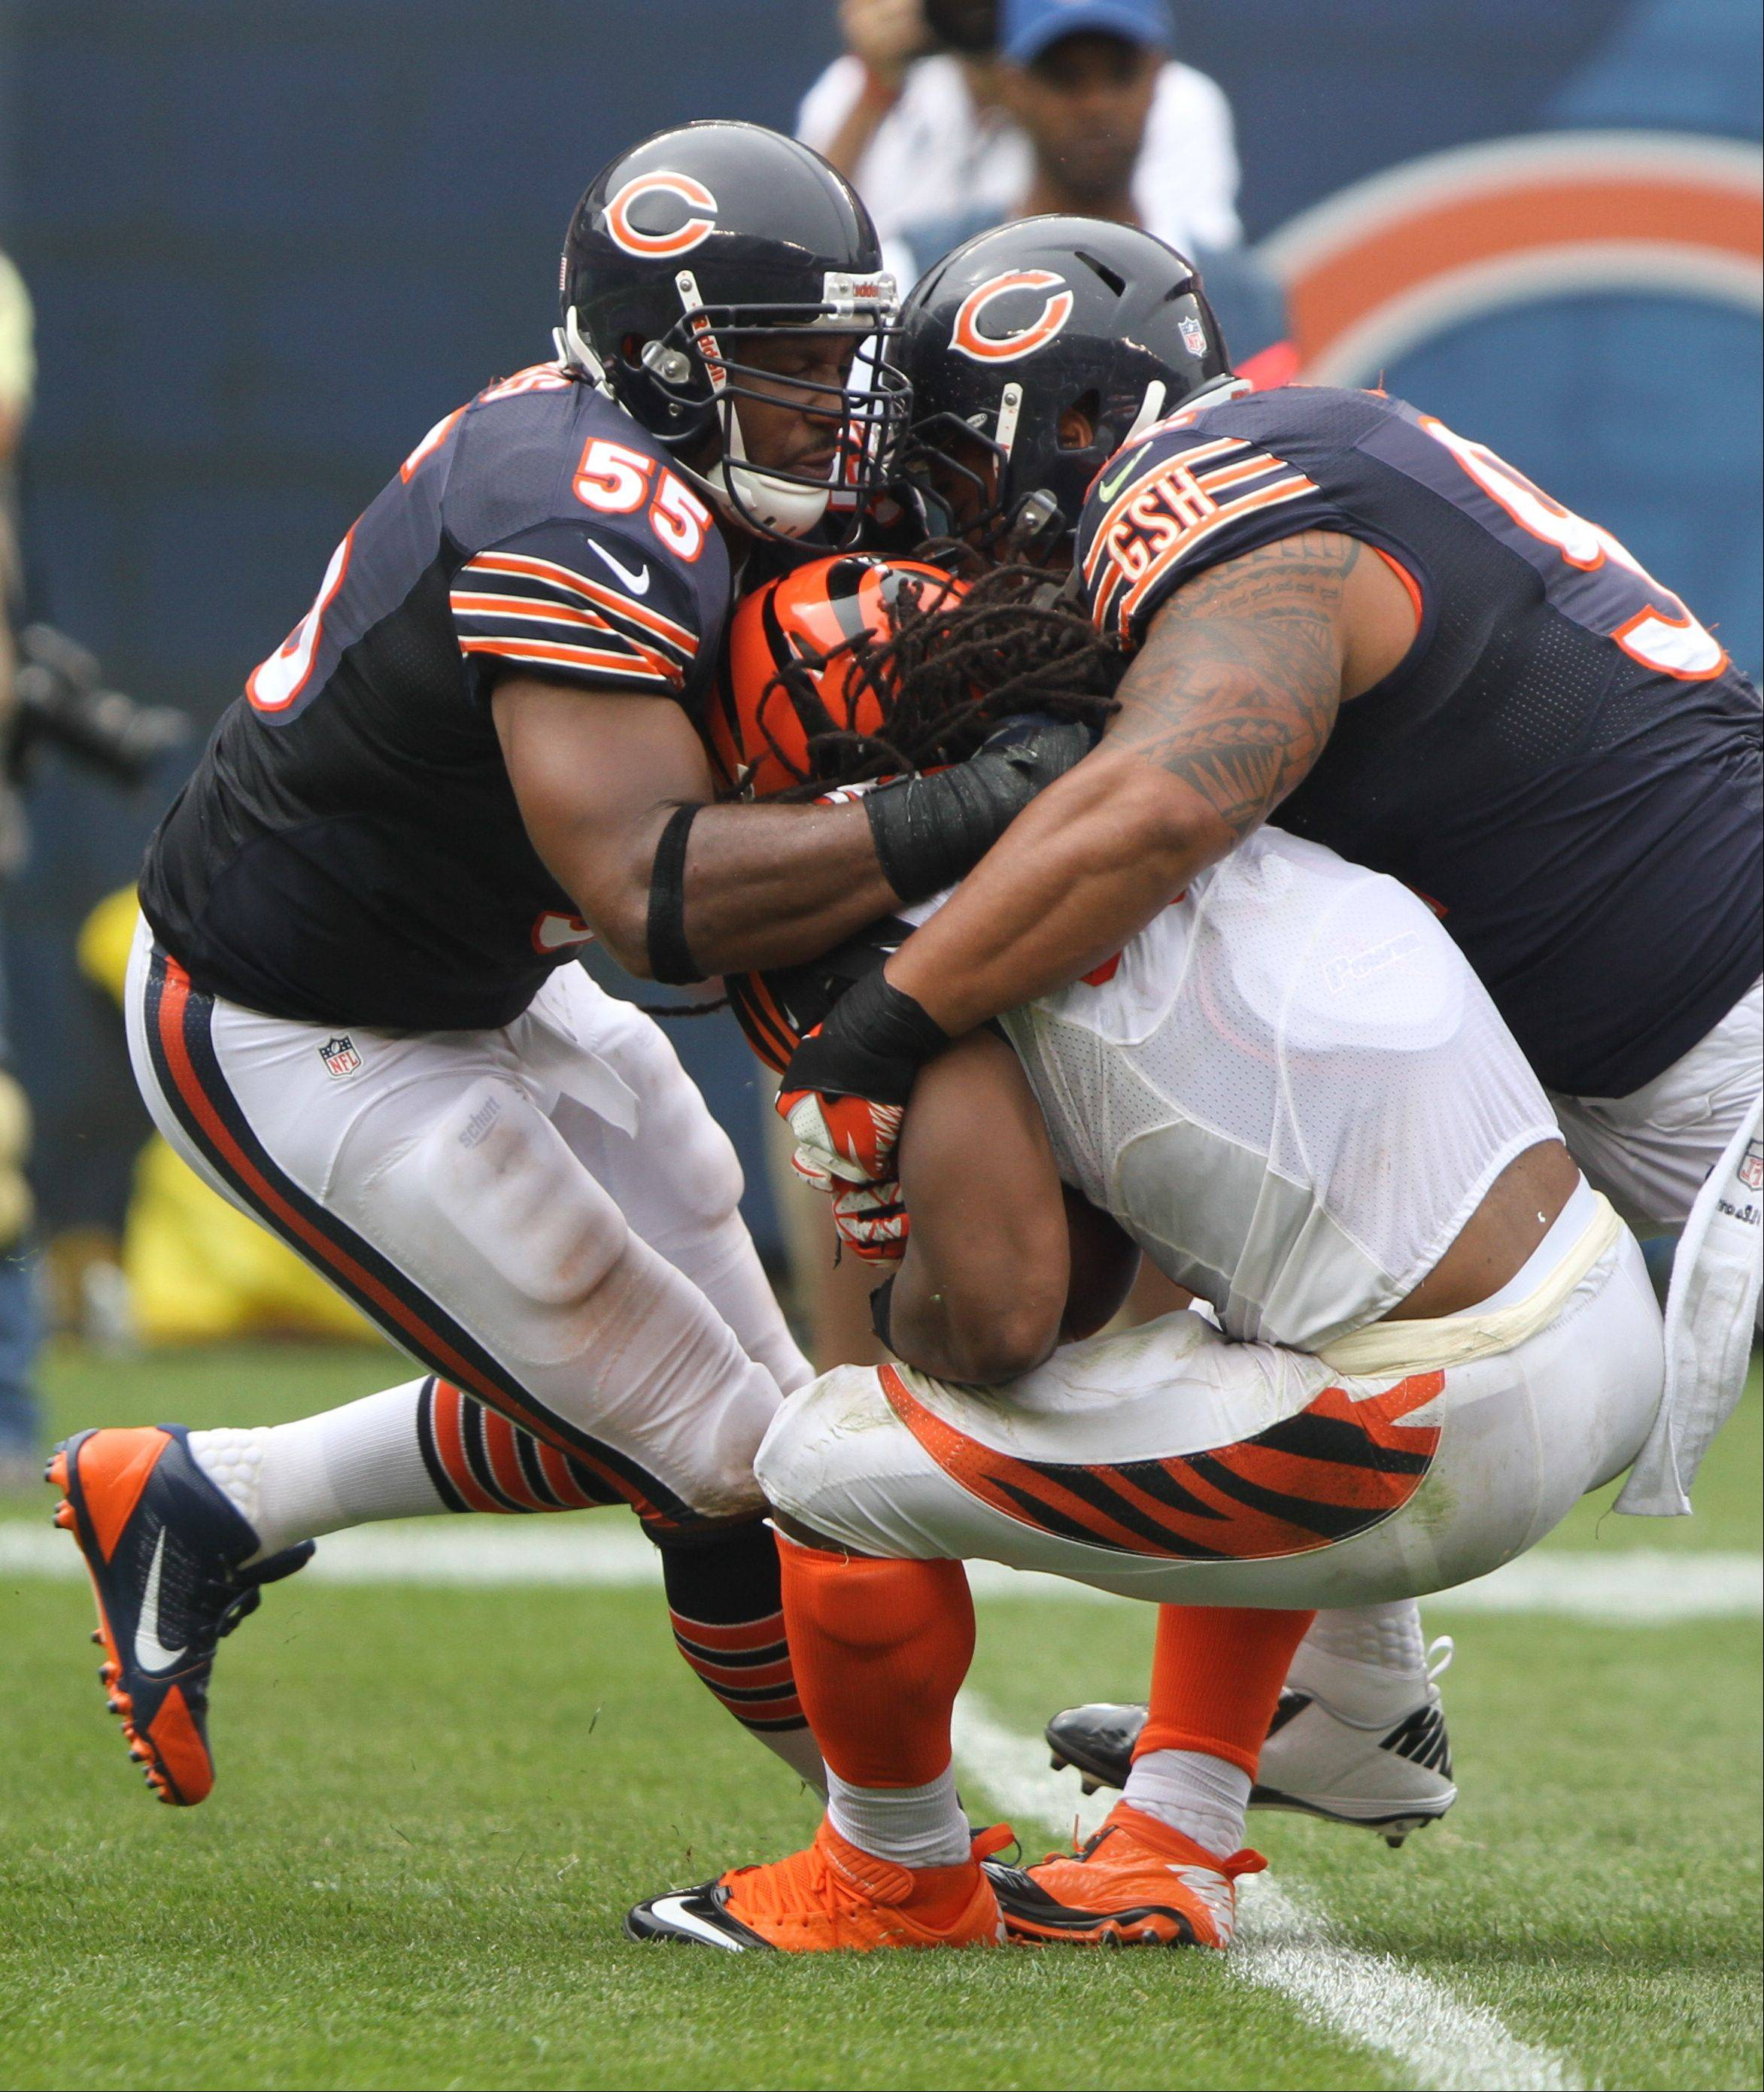 Bears outside linebacker Lance Briggs and defensive end Julius Peppers put a hit on Bengals running back BenJarvus Green-Ellis Sunday at Soldier Field. Peppers was unable to record a sack despite playing against a backup tackle.